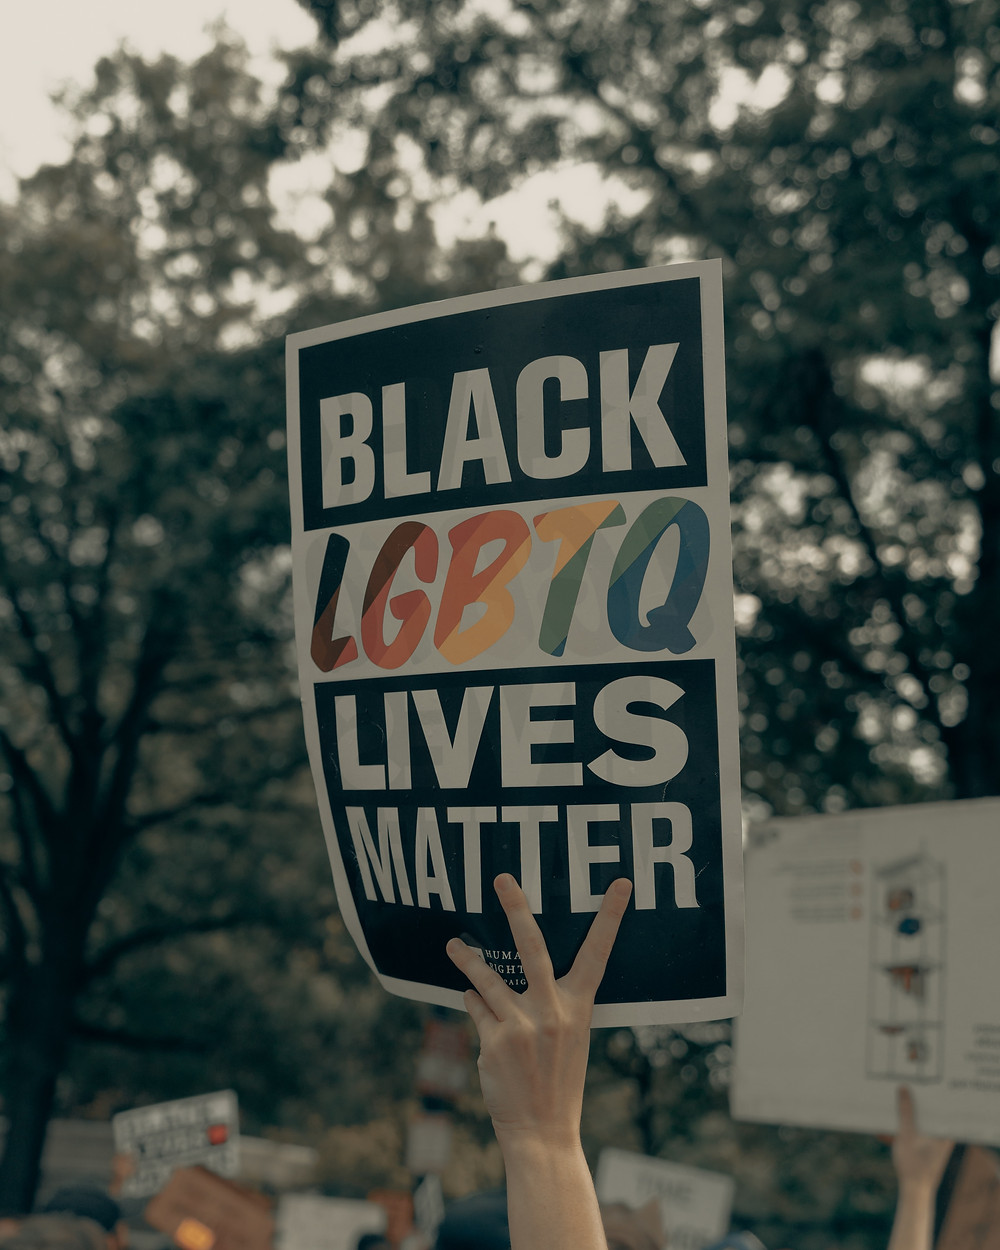 """A white hand holds up a black sign with white block letter writing that says """"Black LGBTQ Lives Matter"""" - the """"LGBTQ"""" is rainbow-colored."""